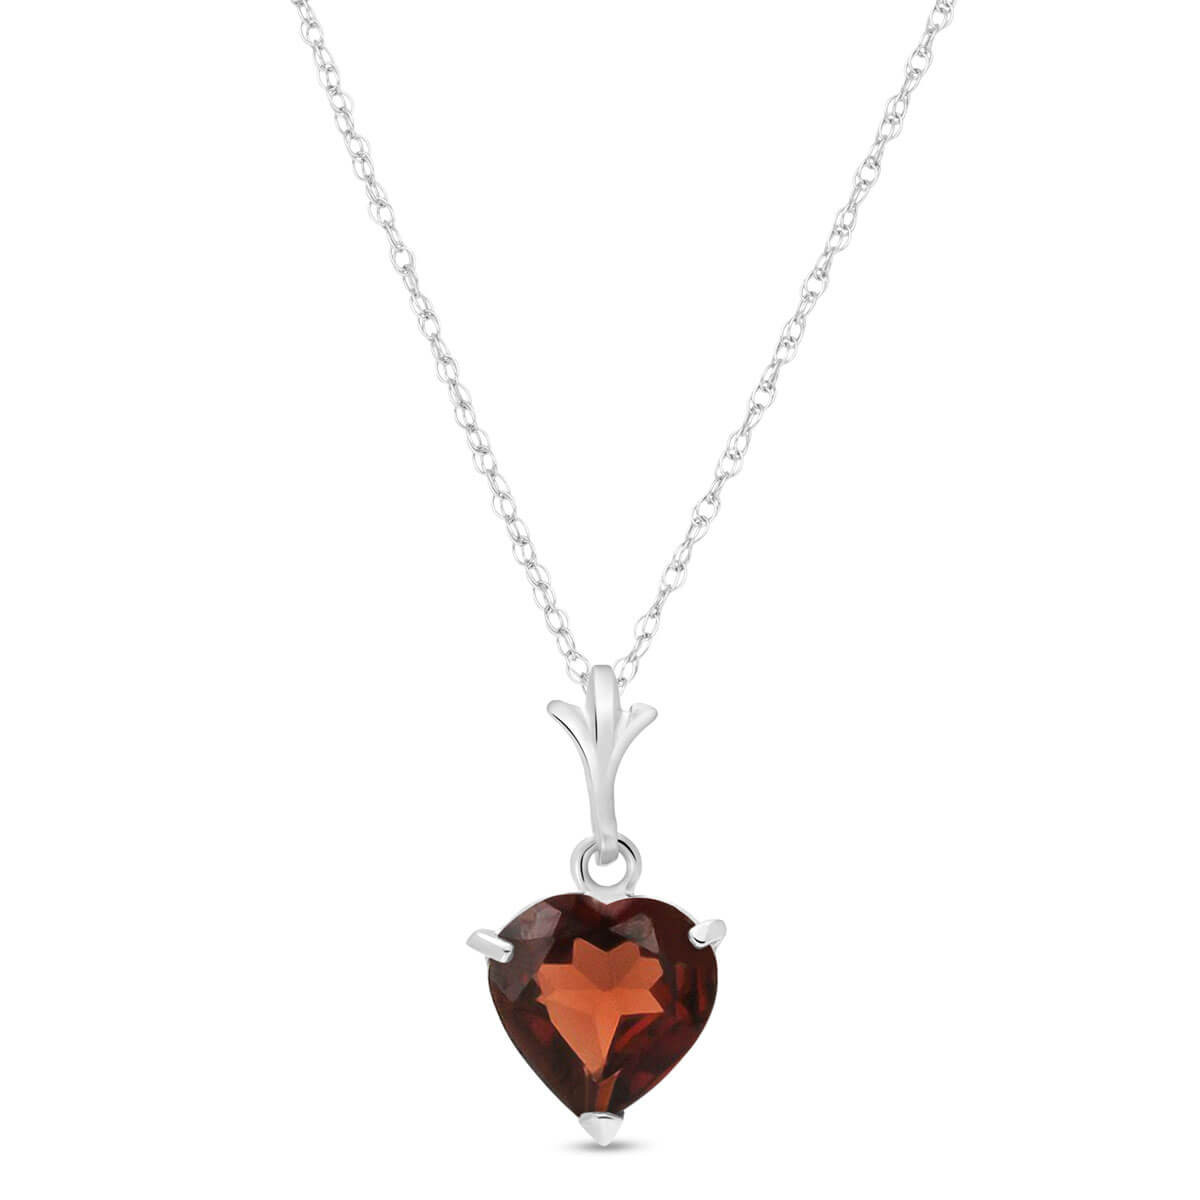 Garnet Heart Pendant Necklace 1.5 ct in 9ct White Gold